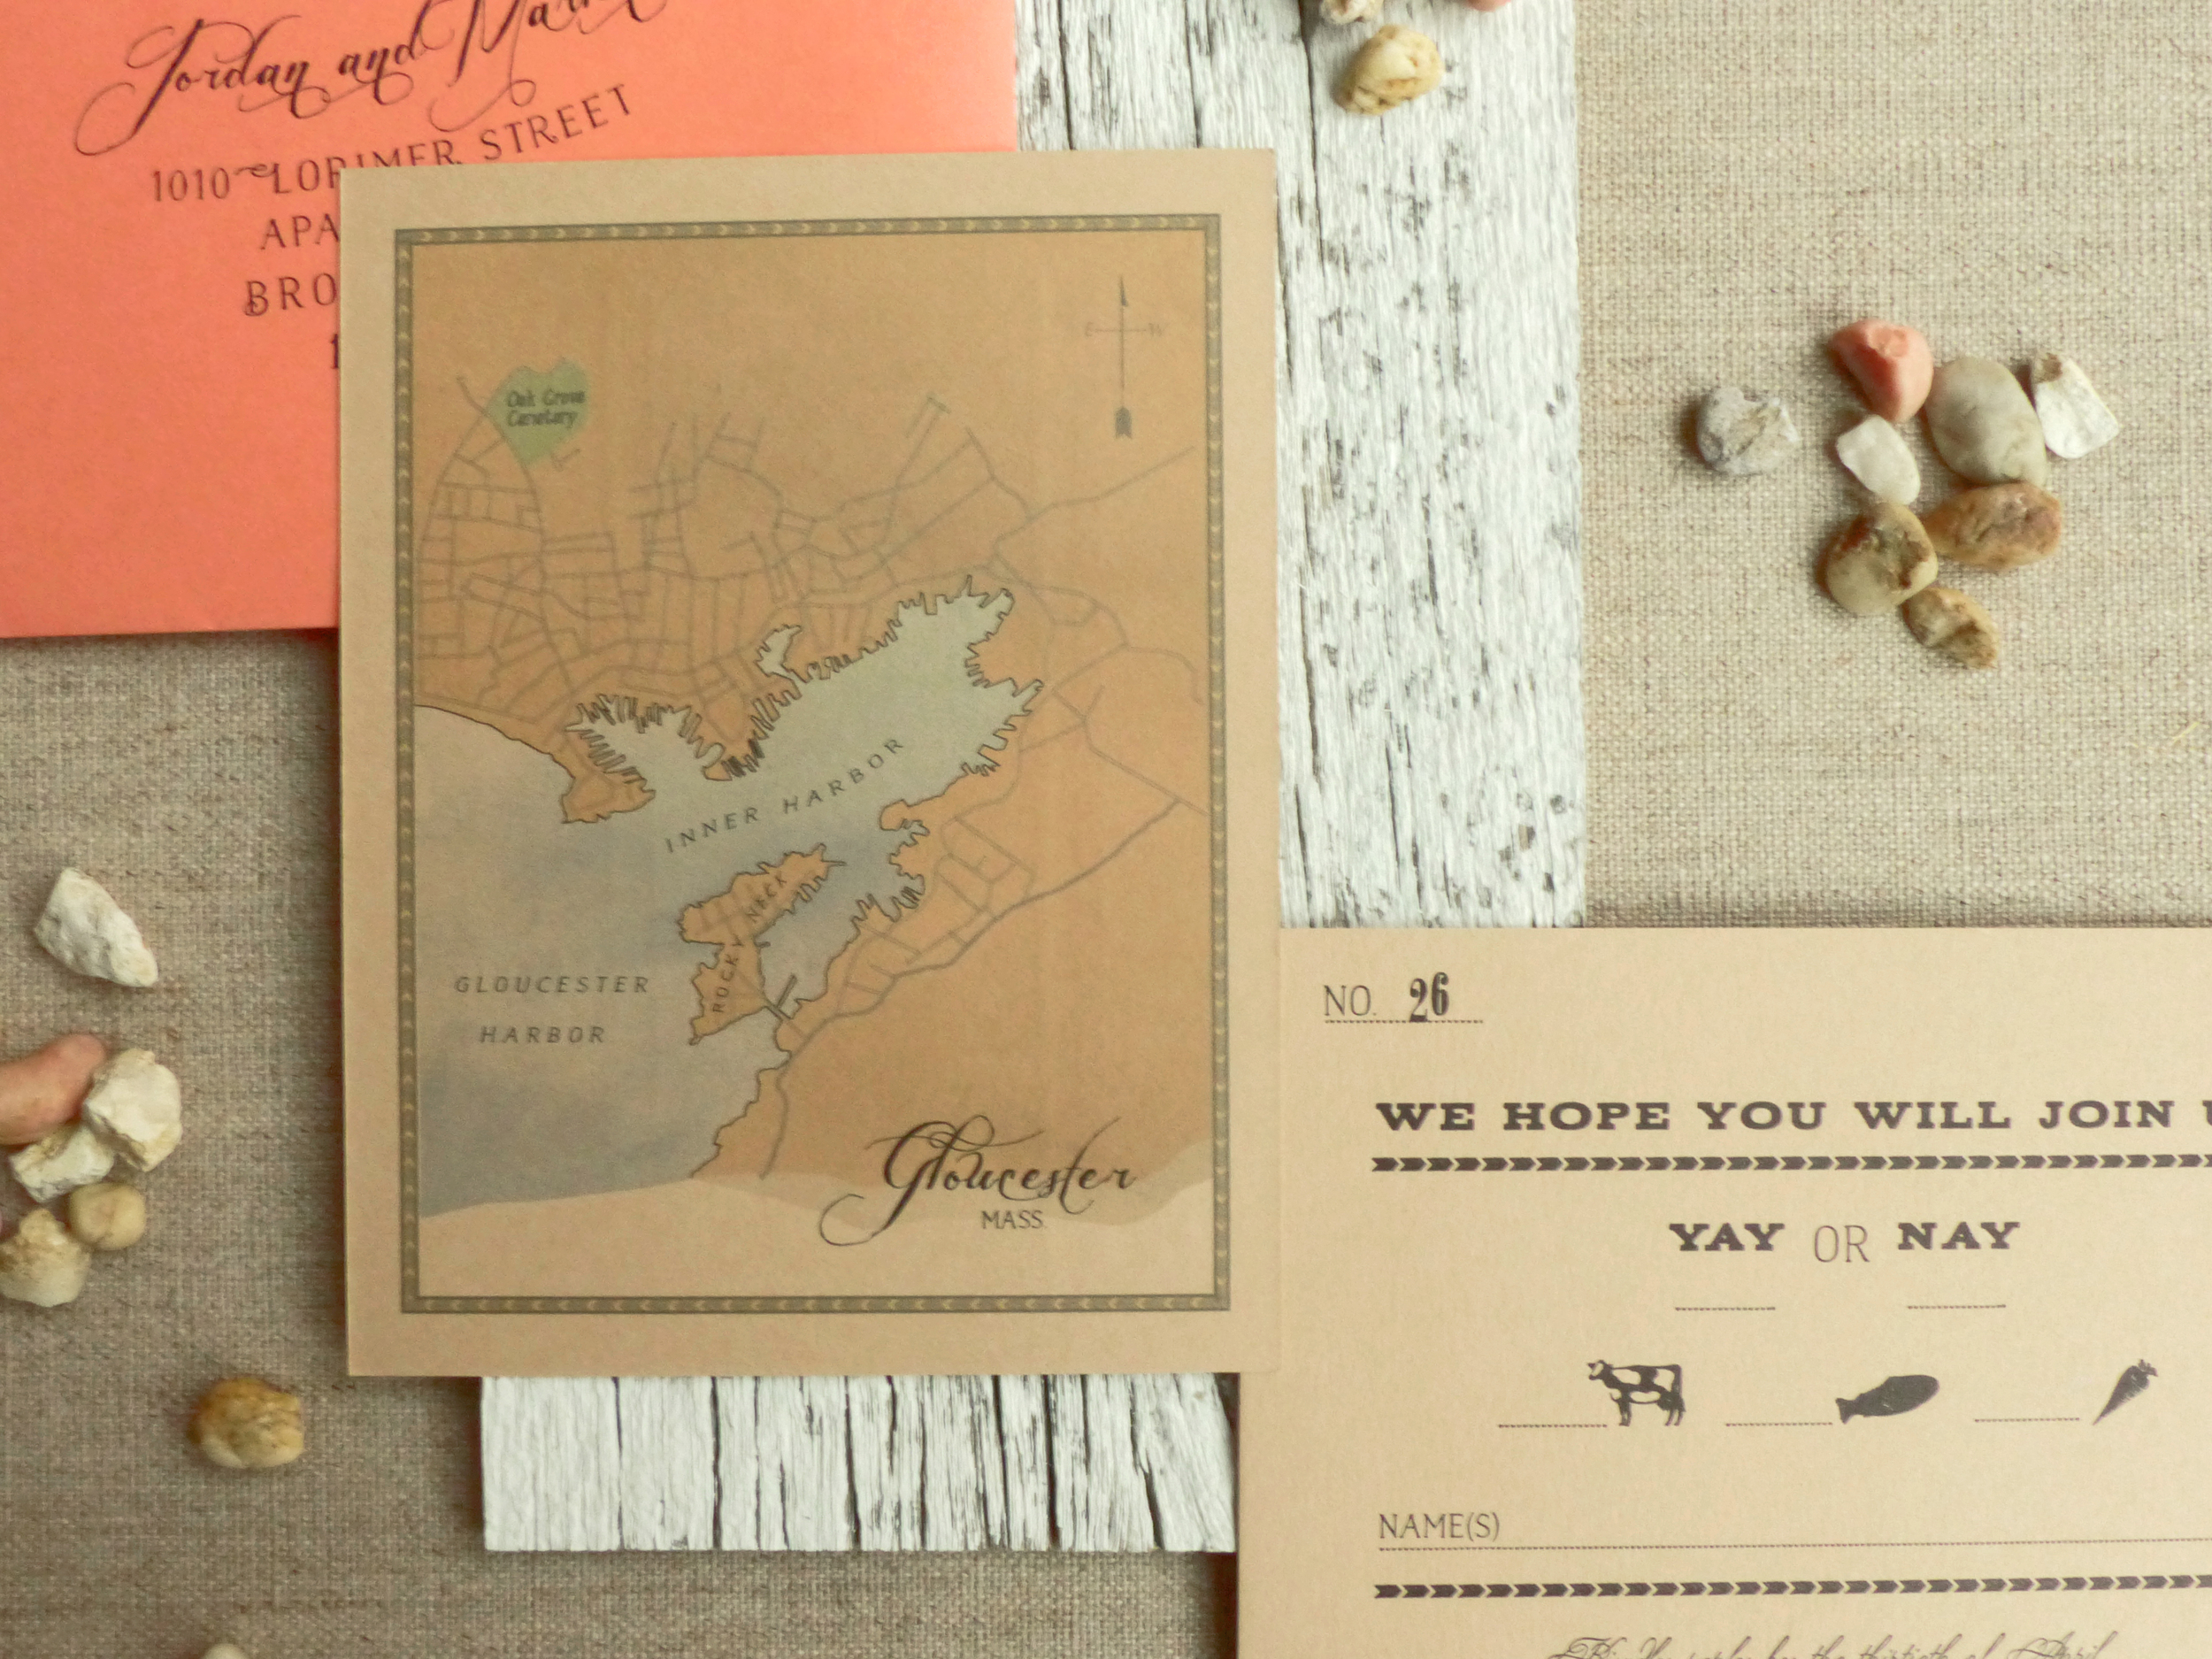 We created a watercolor map of the historic town for the back of the reply card.